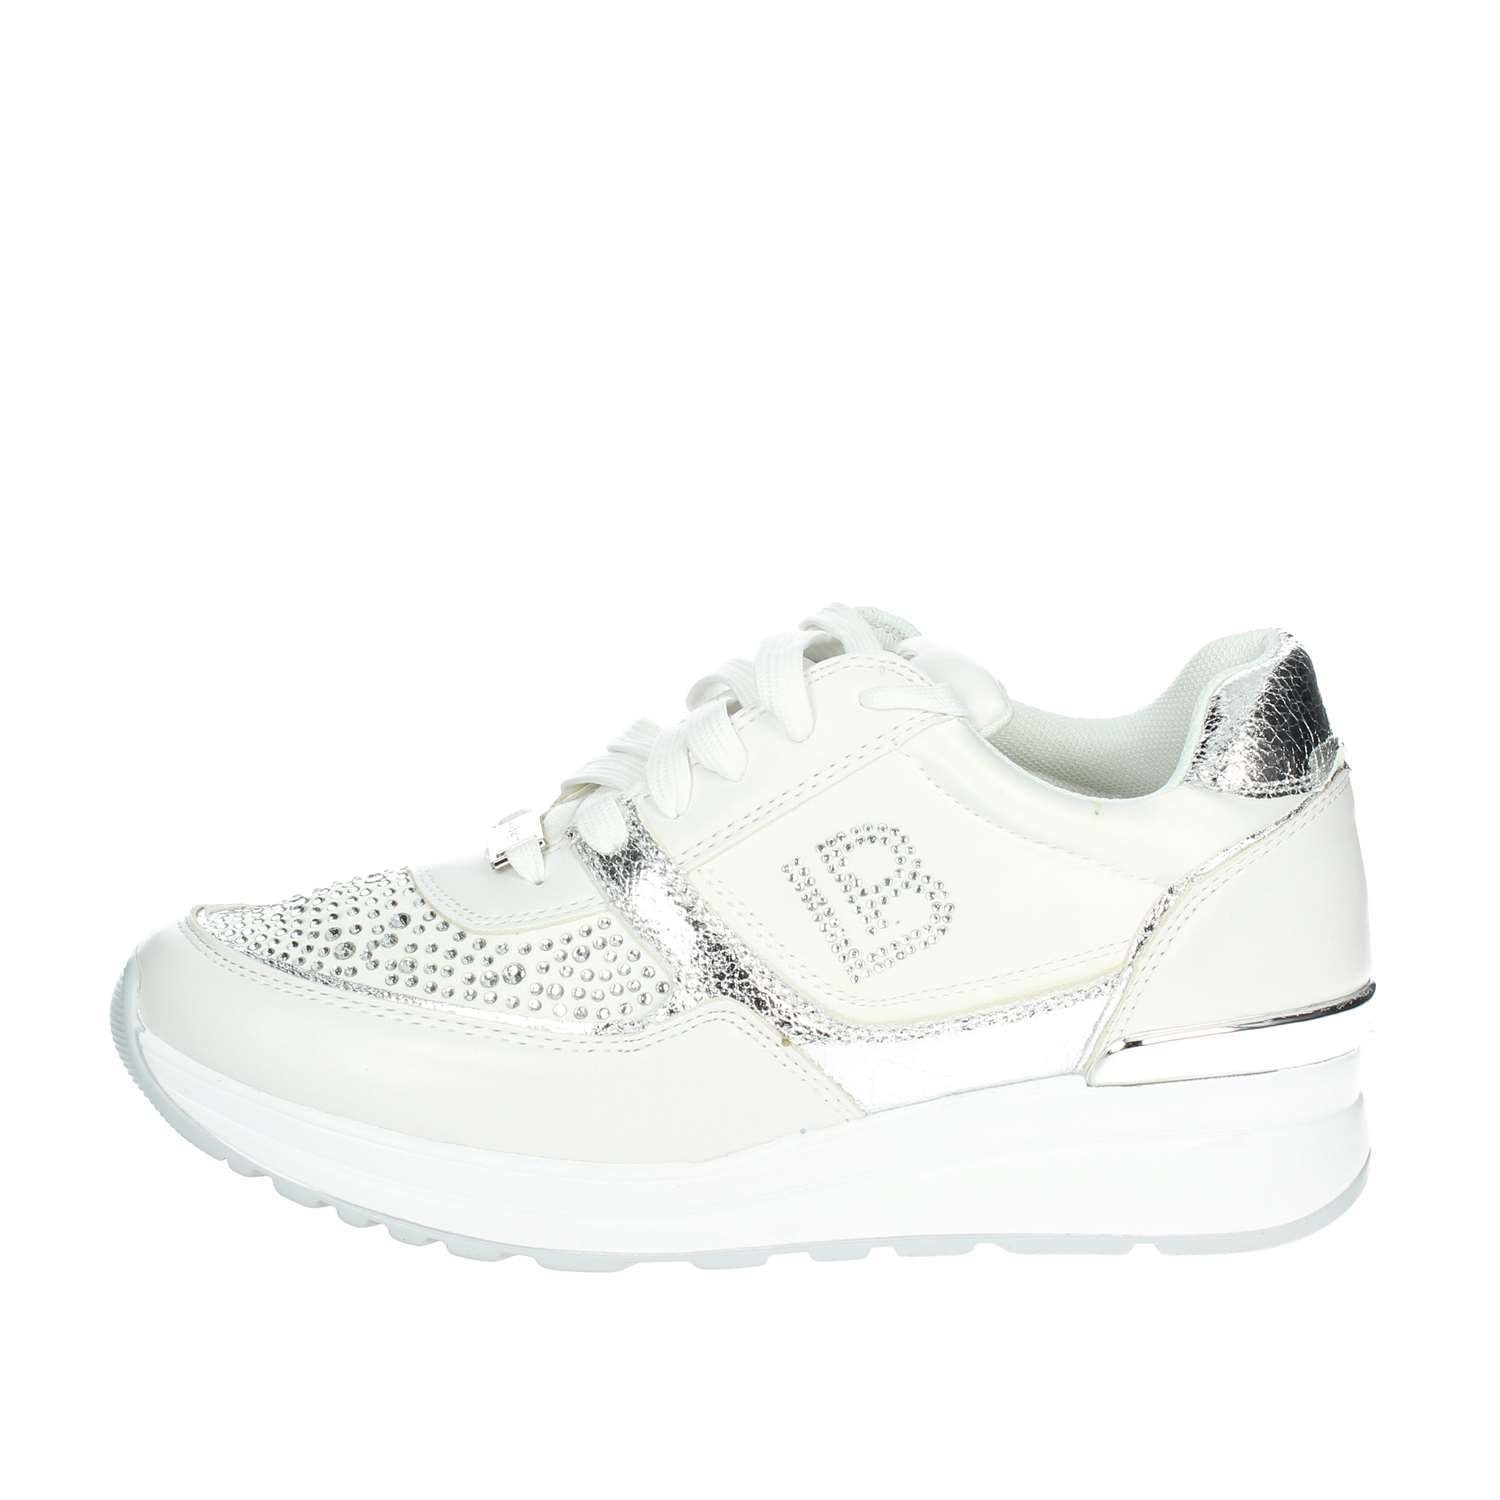 Laura Blanc Biagiotti 675 Femme Petite Sneakers B07GSSCVYX Femme Blanc bac0a30 - therethere.space